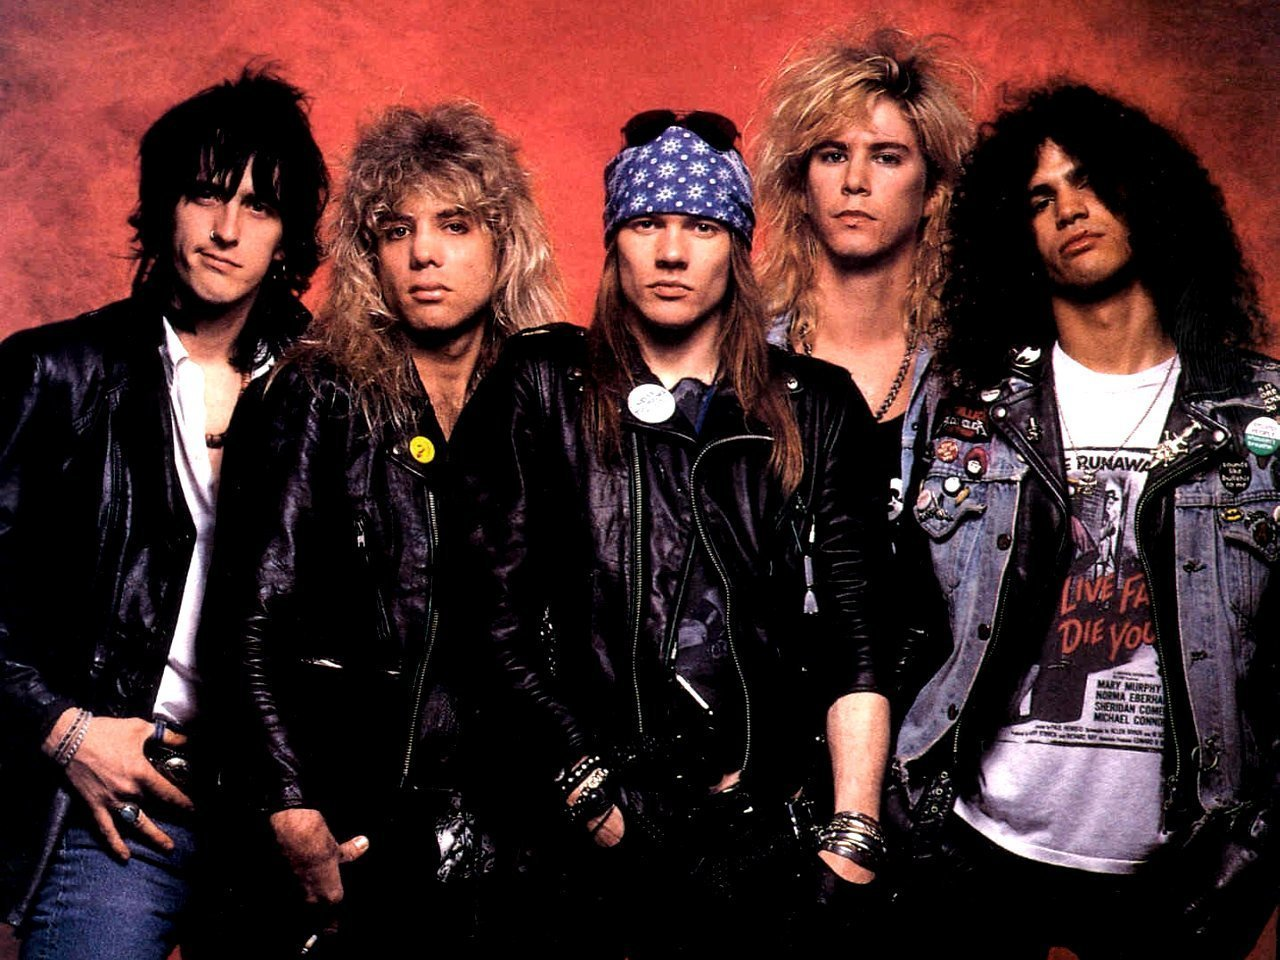 Guns N' Roses - Civil War [Live in Paris '92 HD]